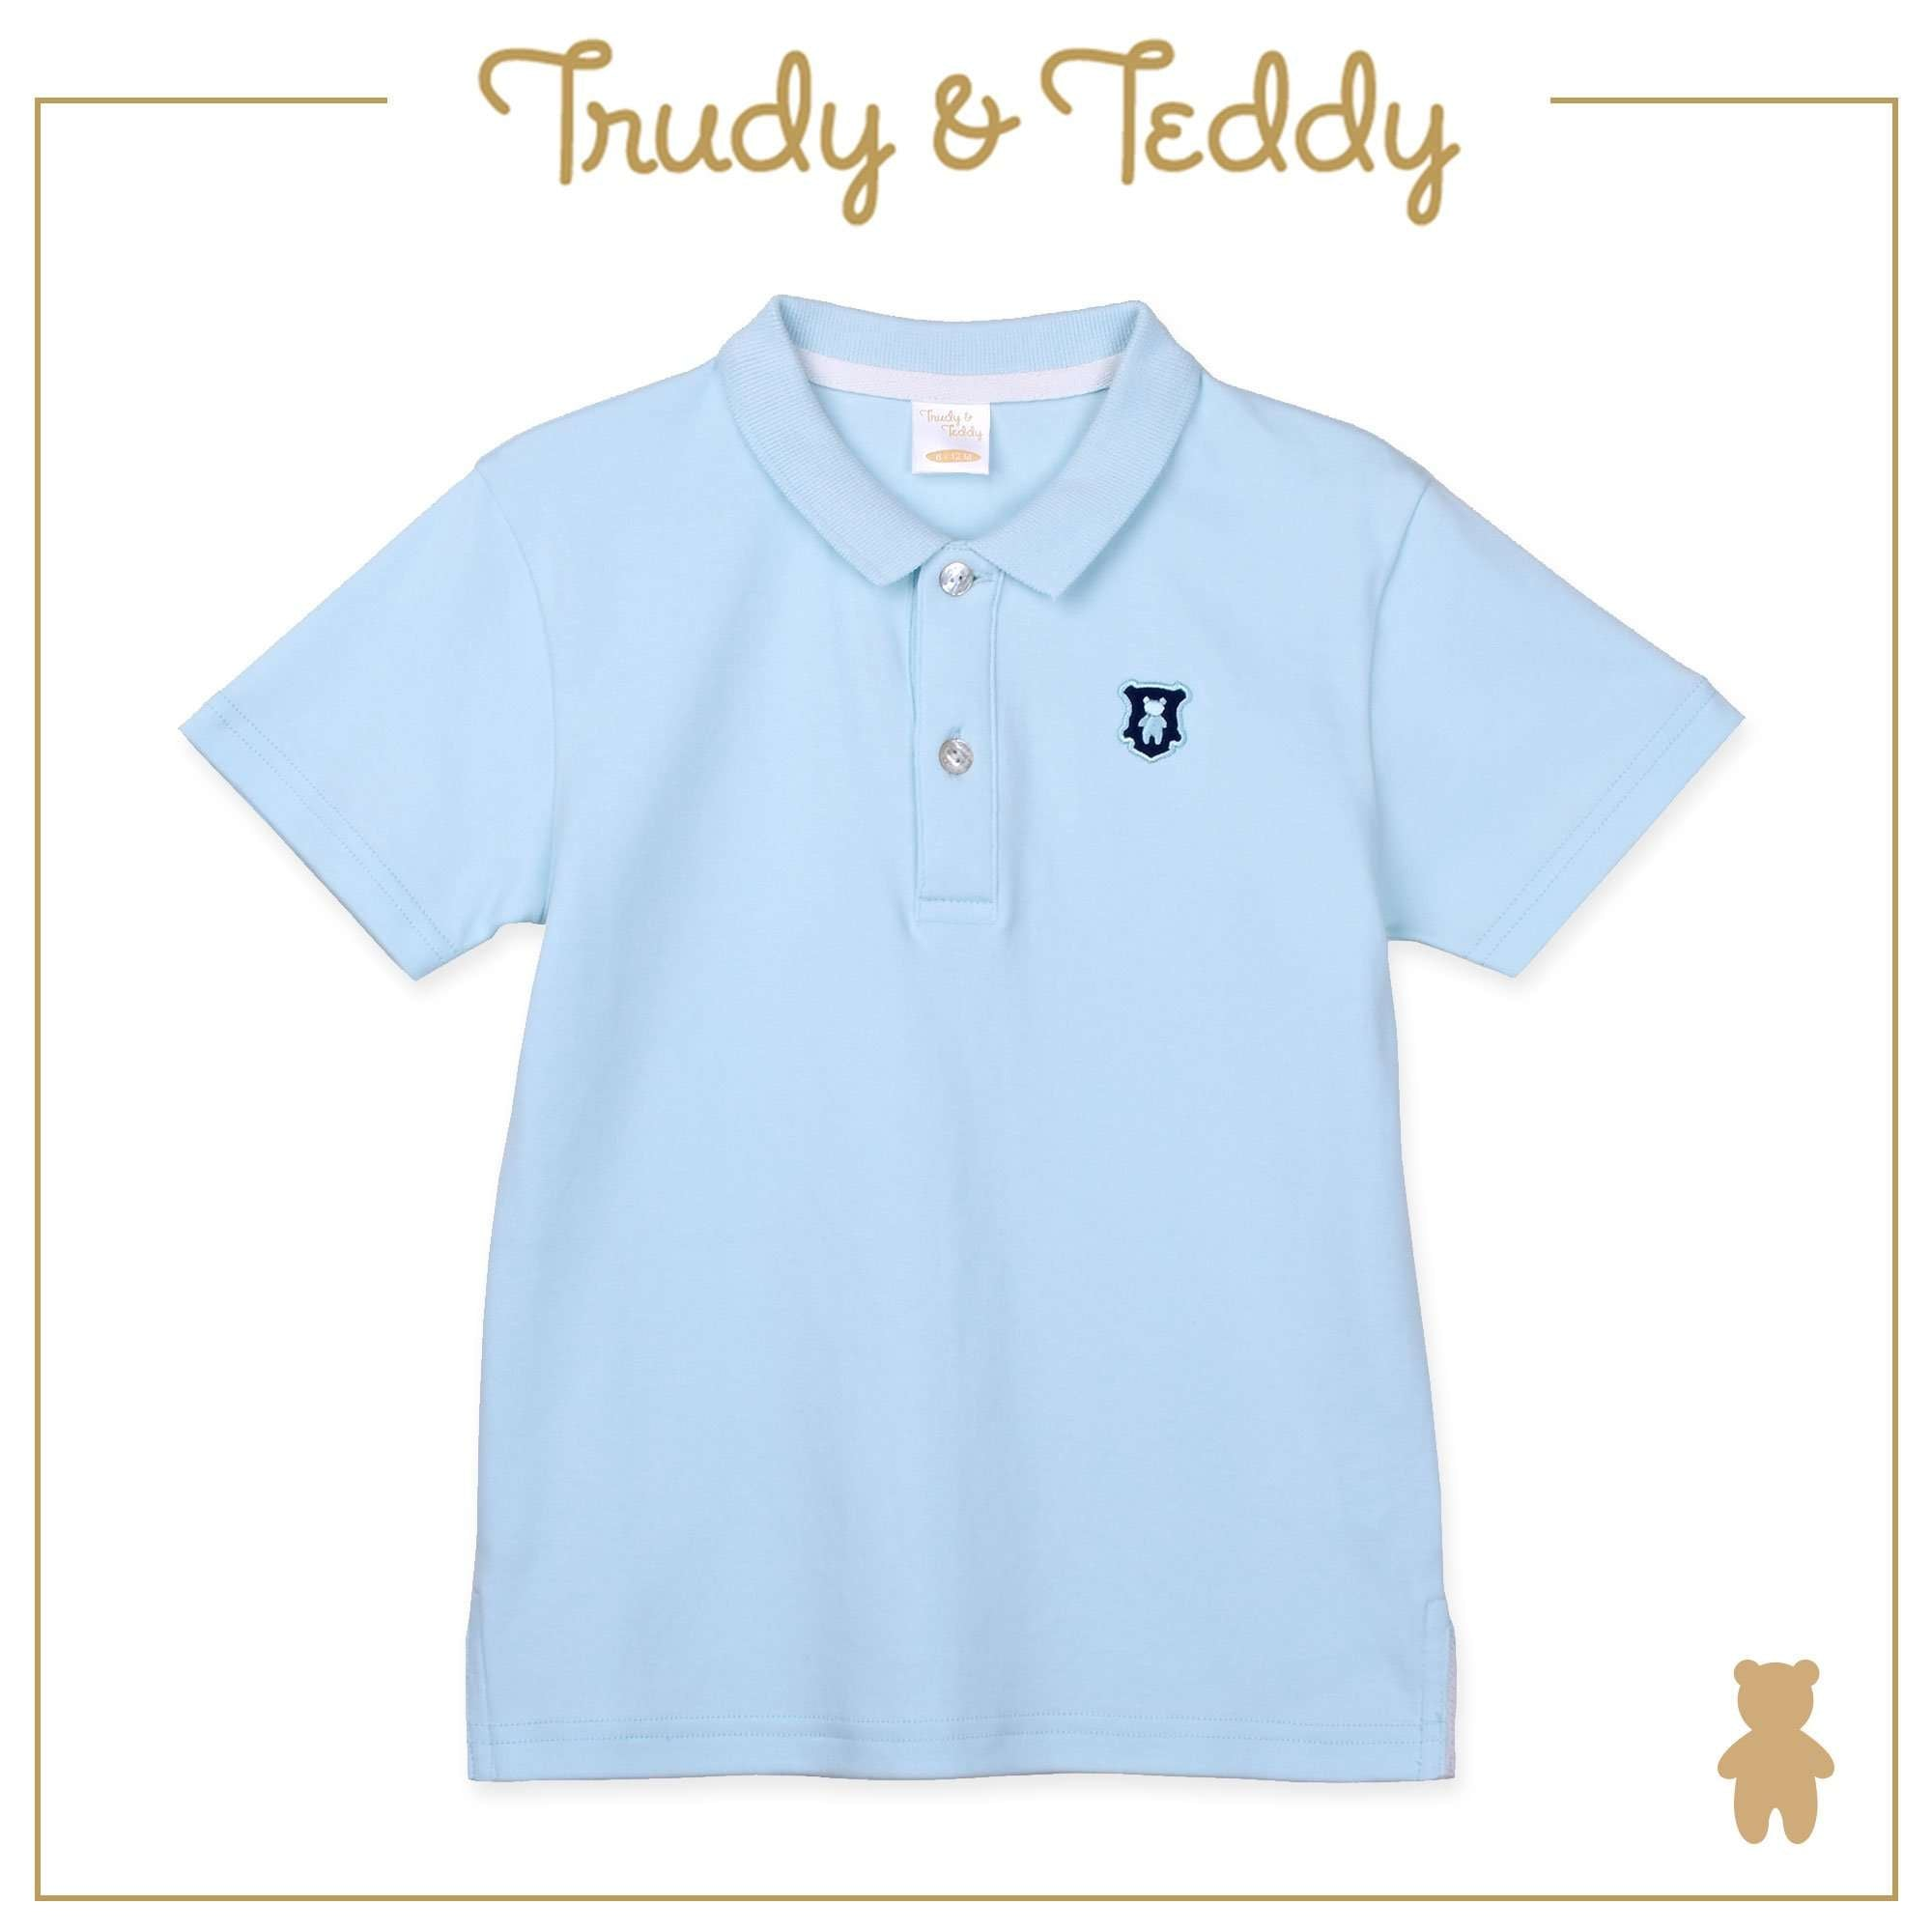 Trudy & Teddy Baby to Kid Boy Short Sleeve Collar Tee - Light Blue T912005-1204-L1 : Buy Trudy & Teddy online at CMG.MY